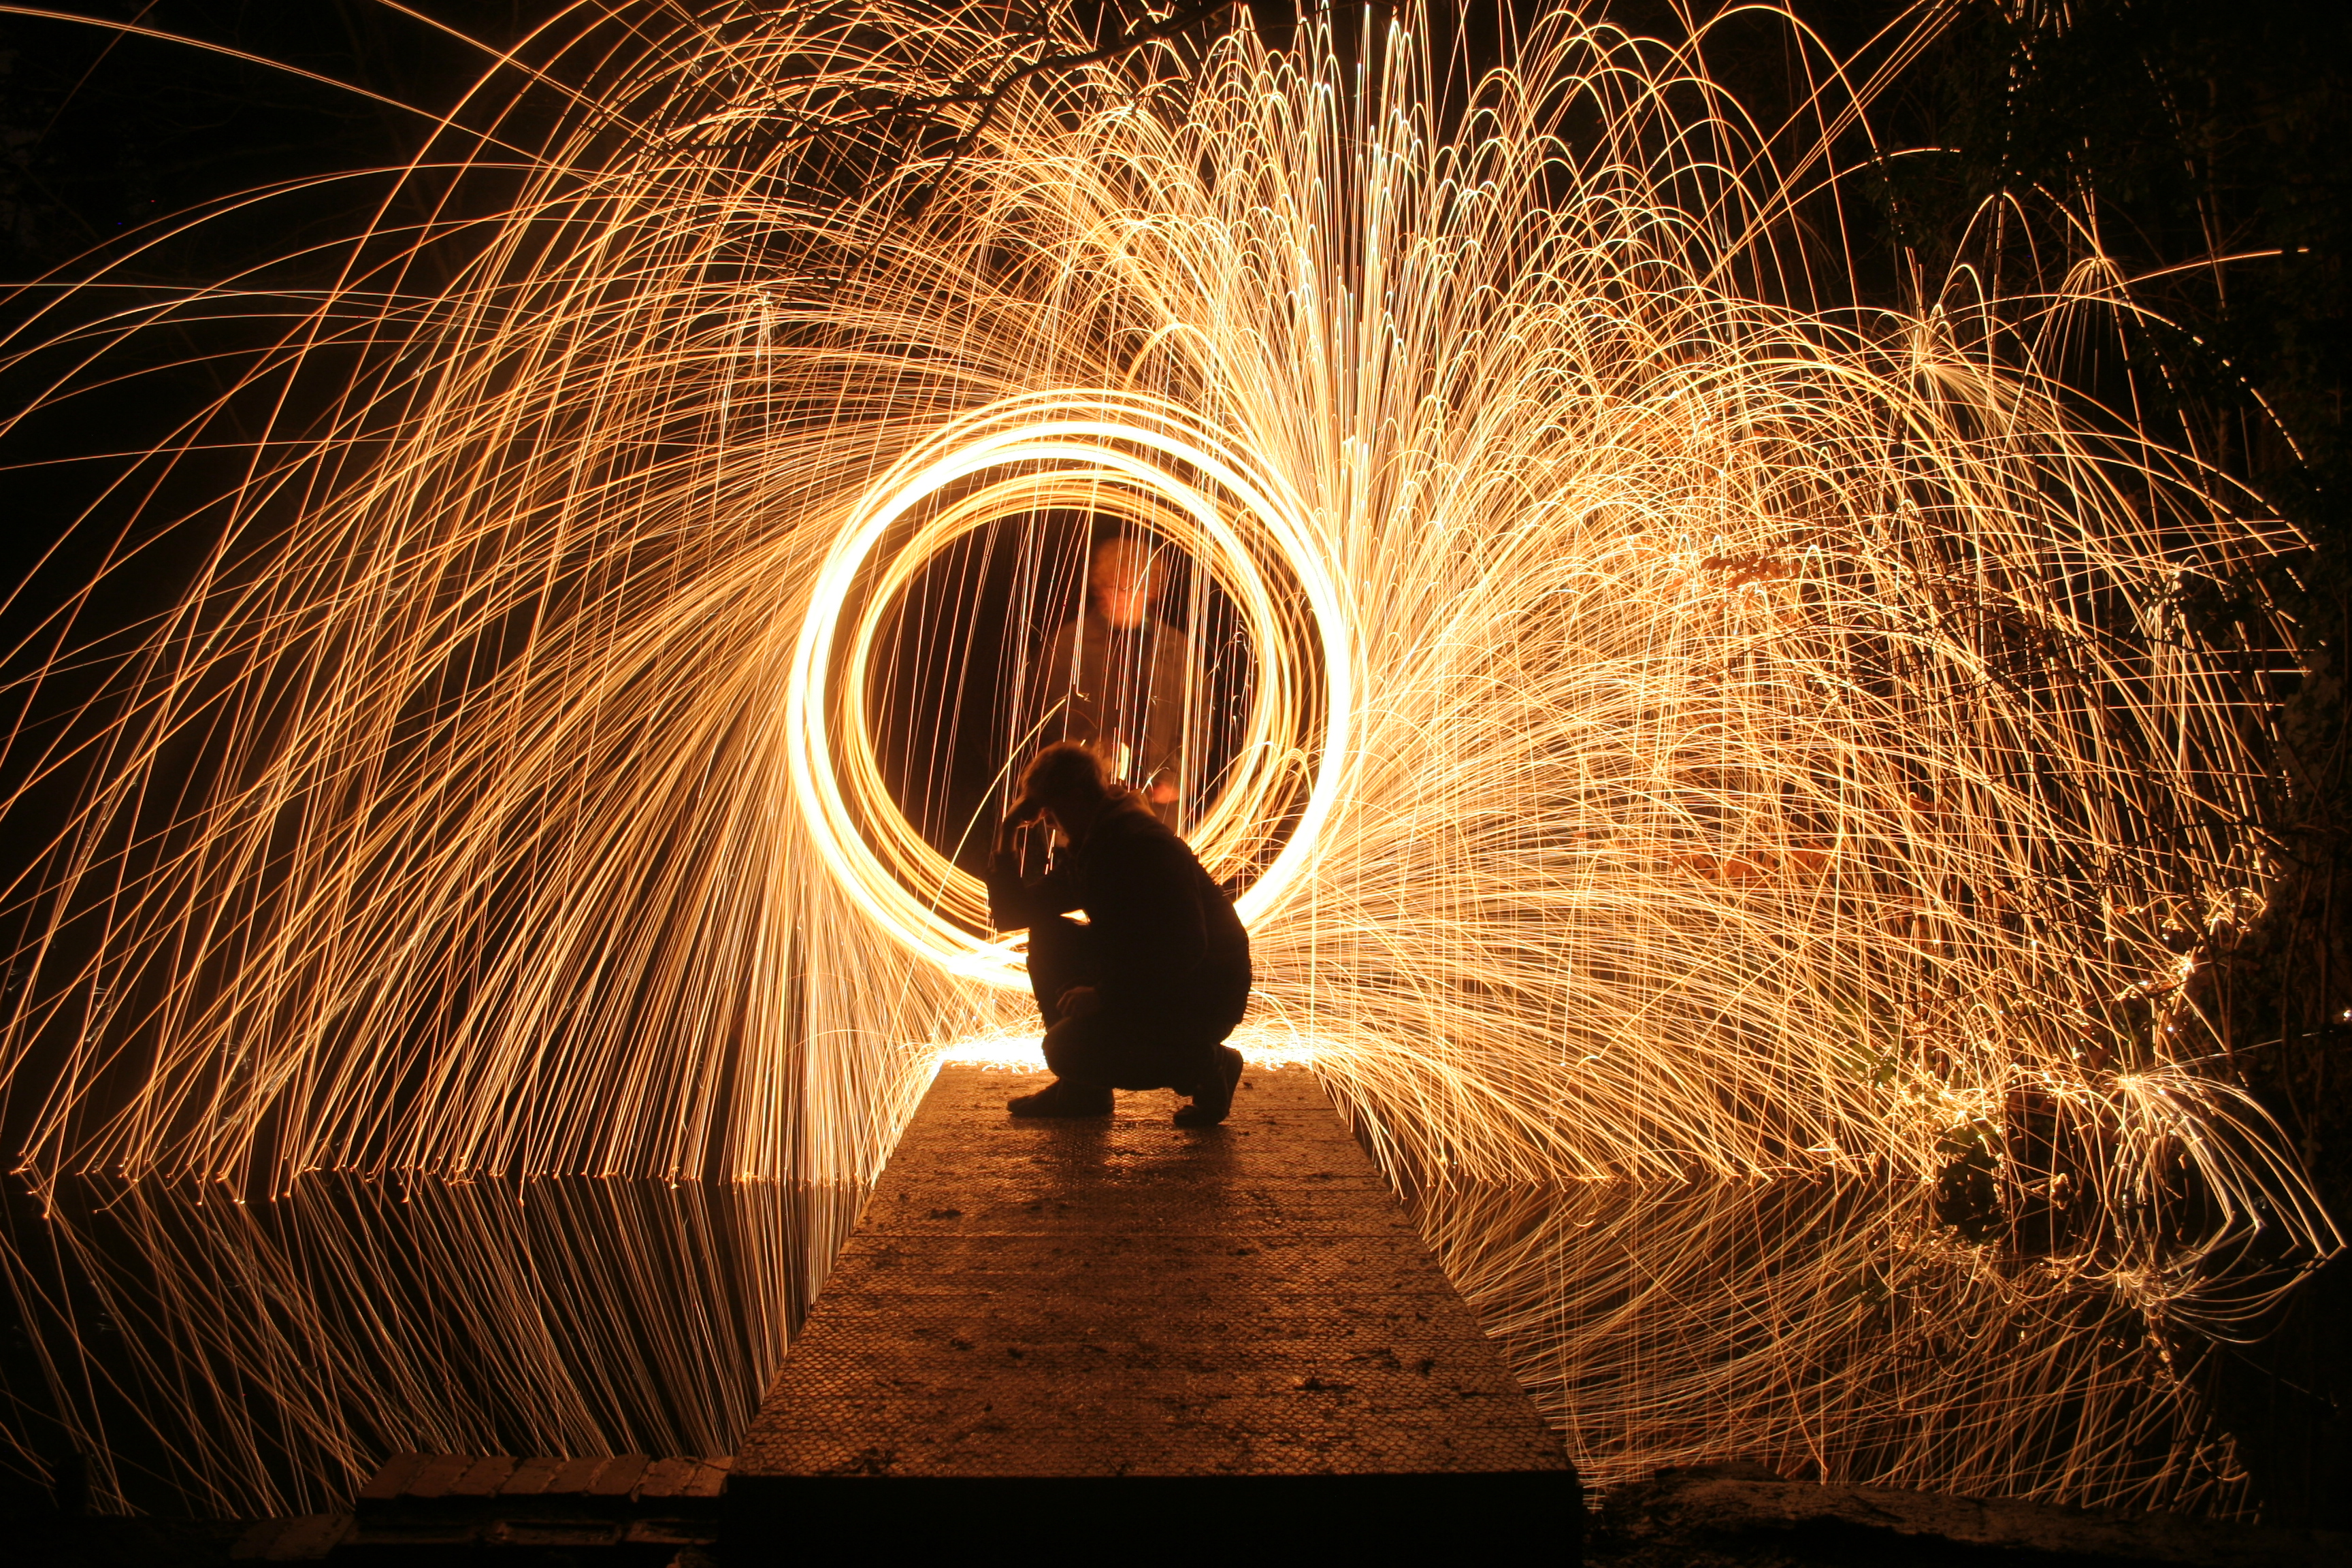 Steel Wool Photography Shoot with Graffiti Background